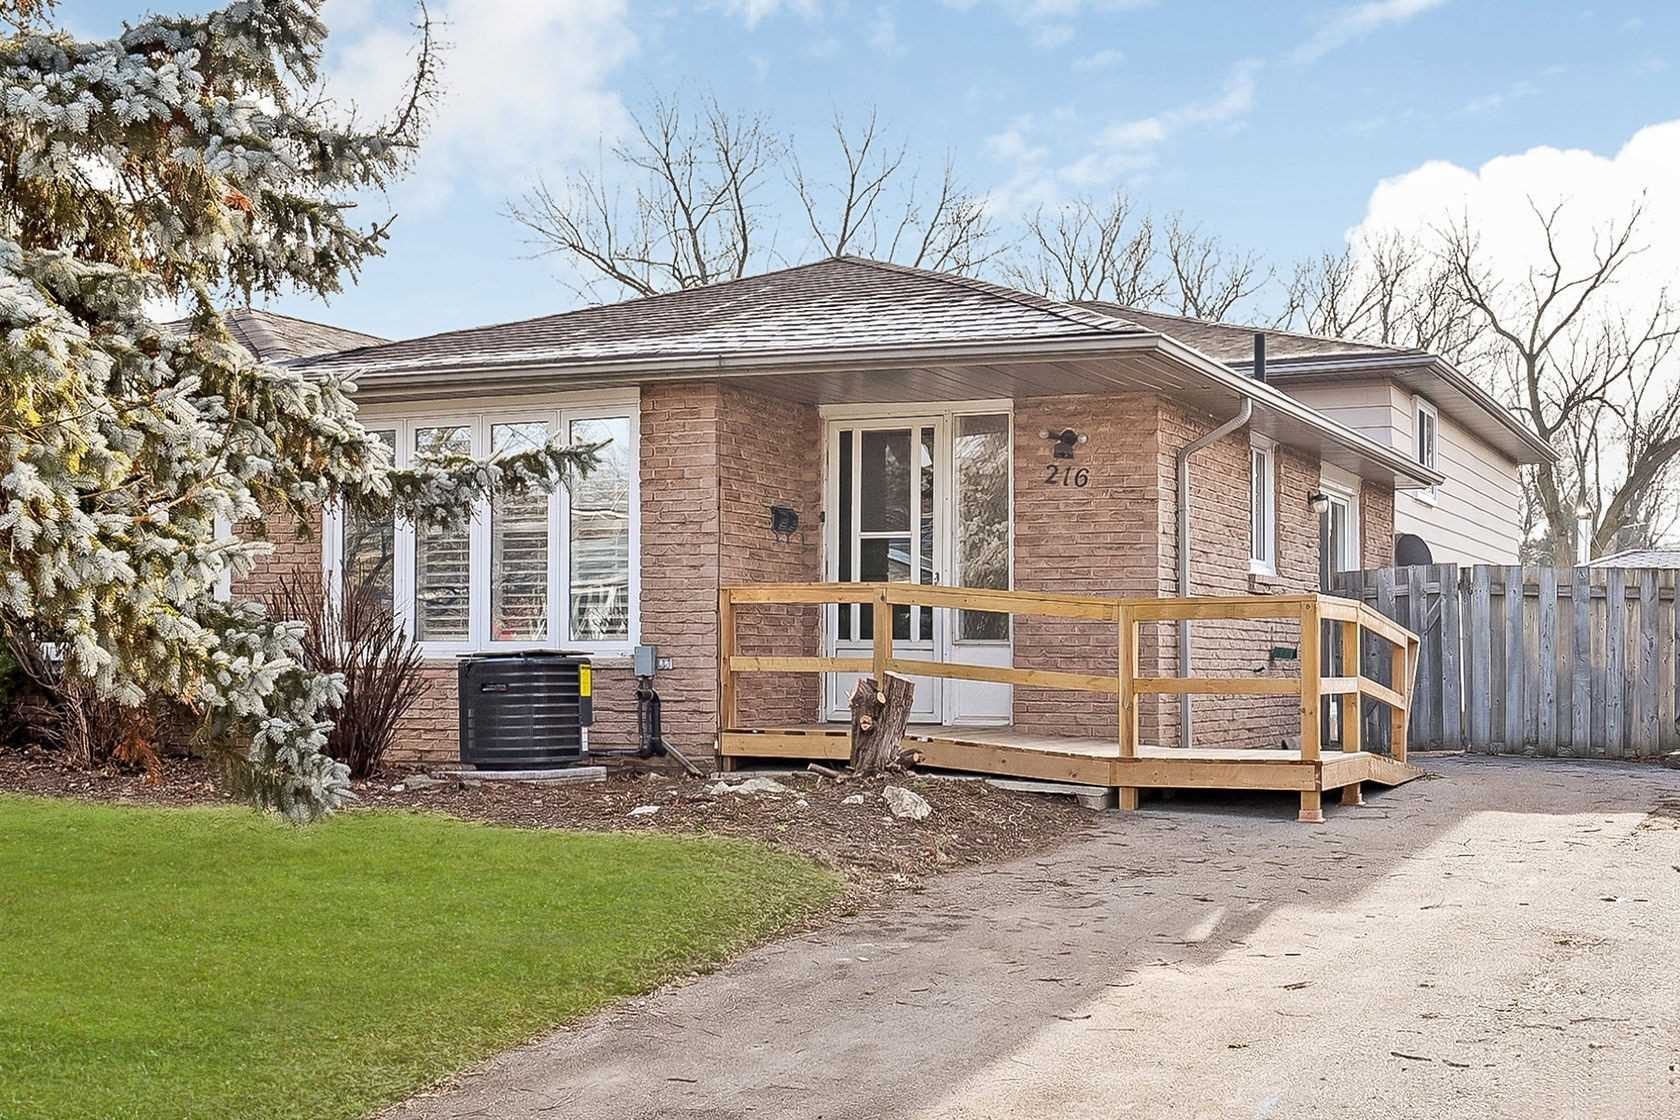 House for sale at 216 Palmer Avenue Richmond Hill Ontario - MLS: N4327773